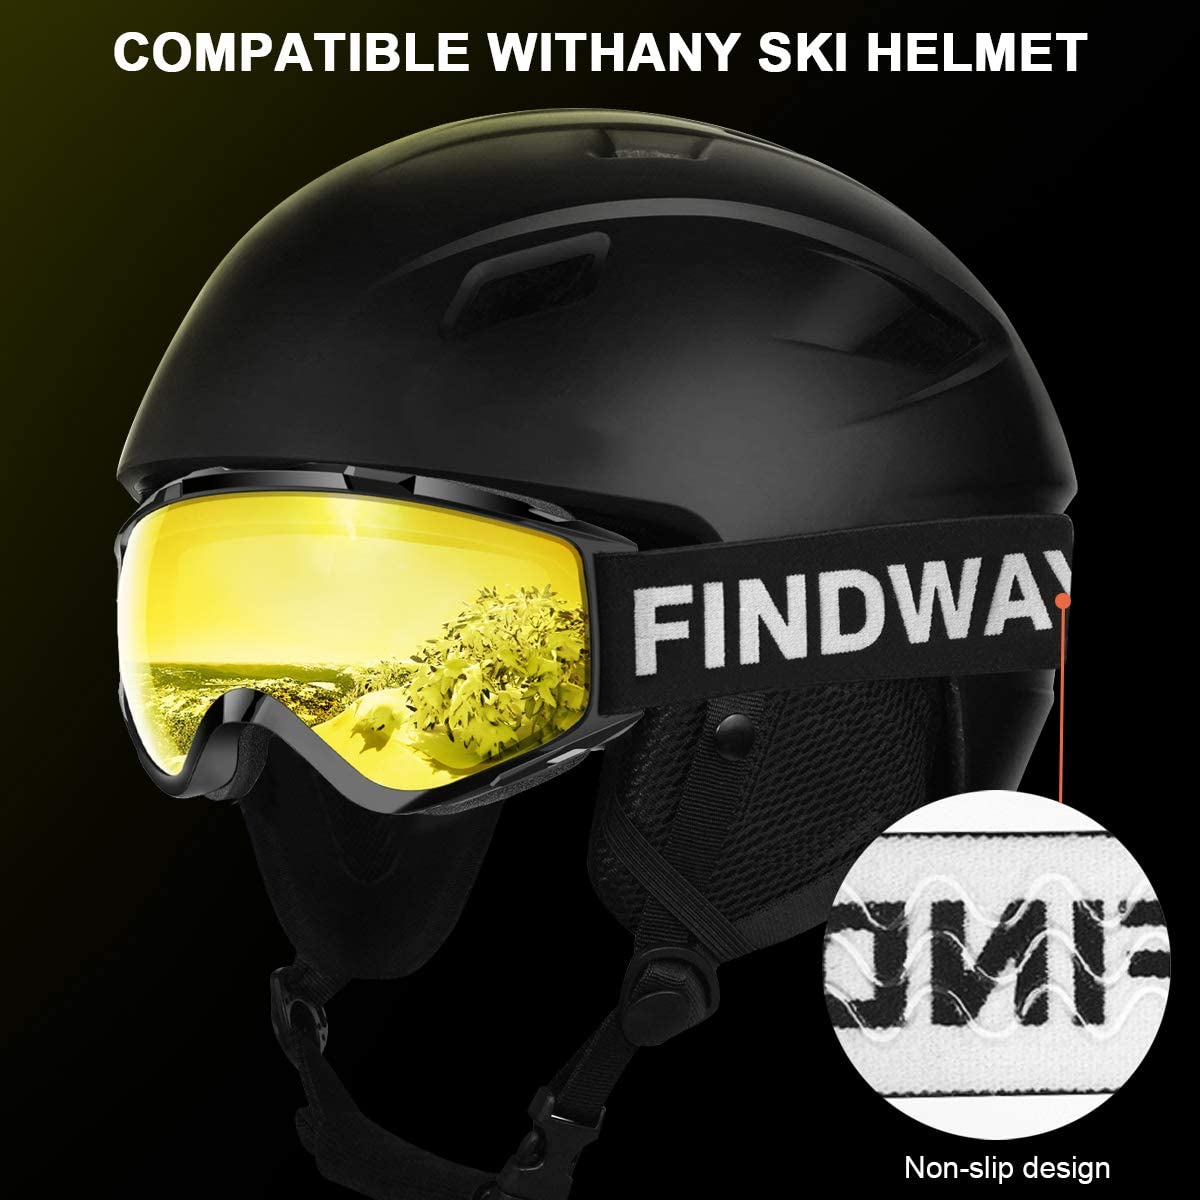 findway Ski Goggles Women /& Youth 100/% UV Protection Snow Goggles for Men OTG Design Helmet Compatible Scratch Resistant Anti-Fog Double Glasses Snowboard Goggles